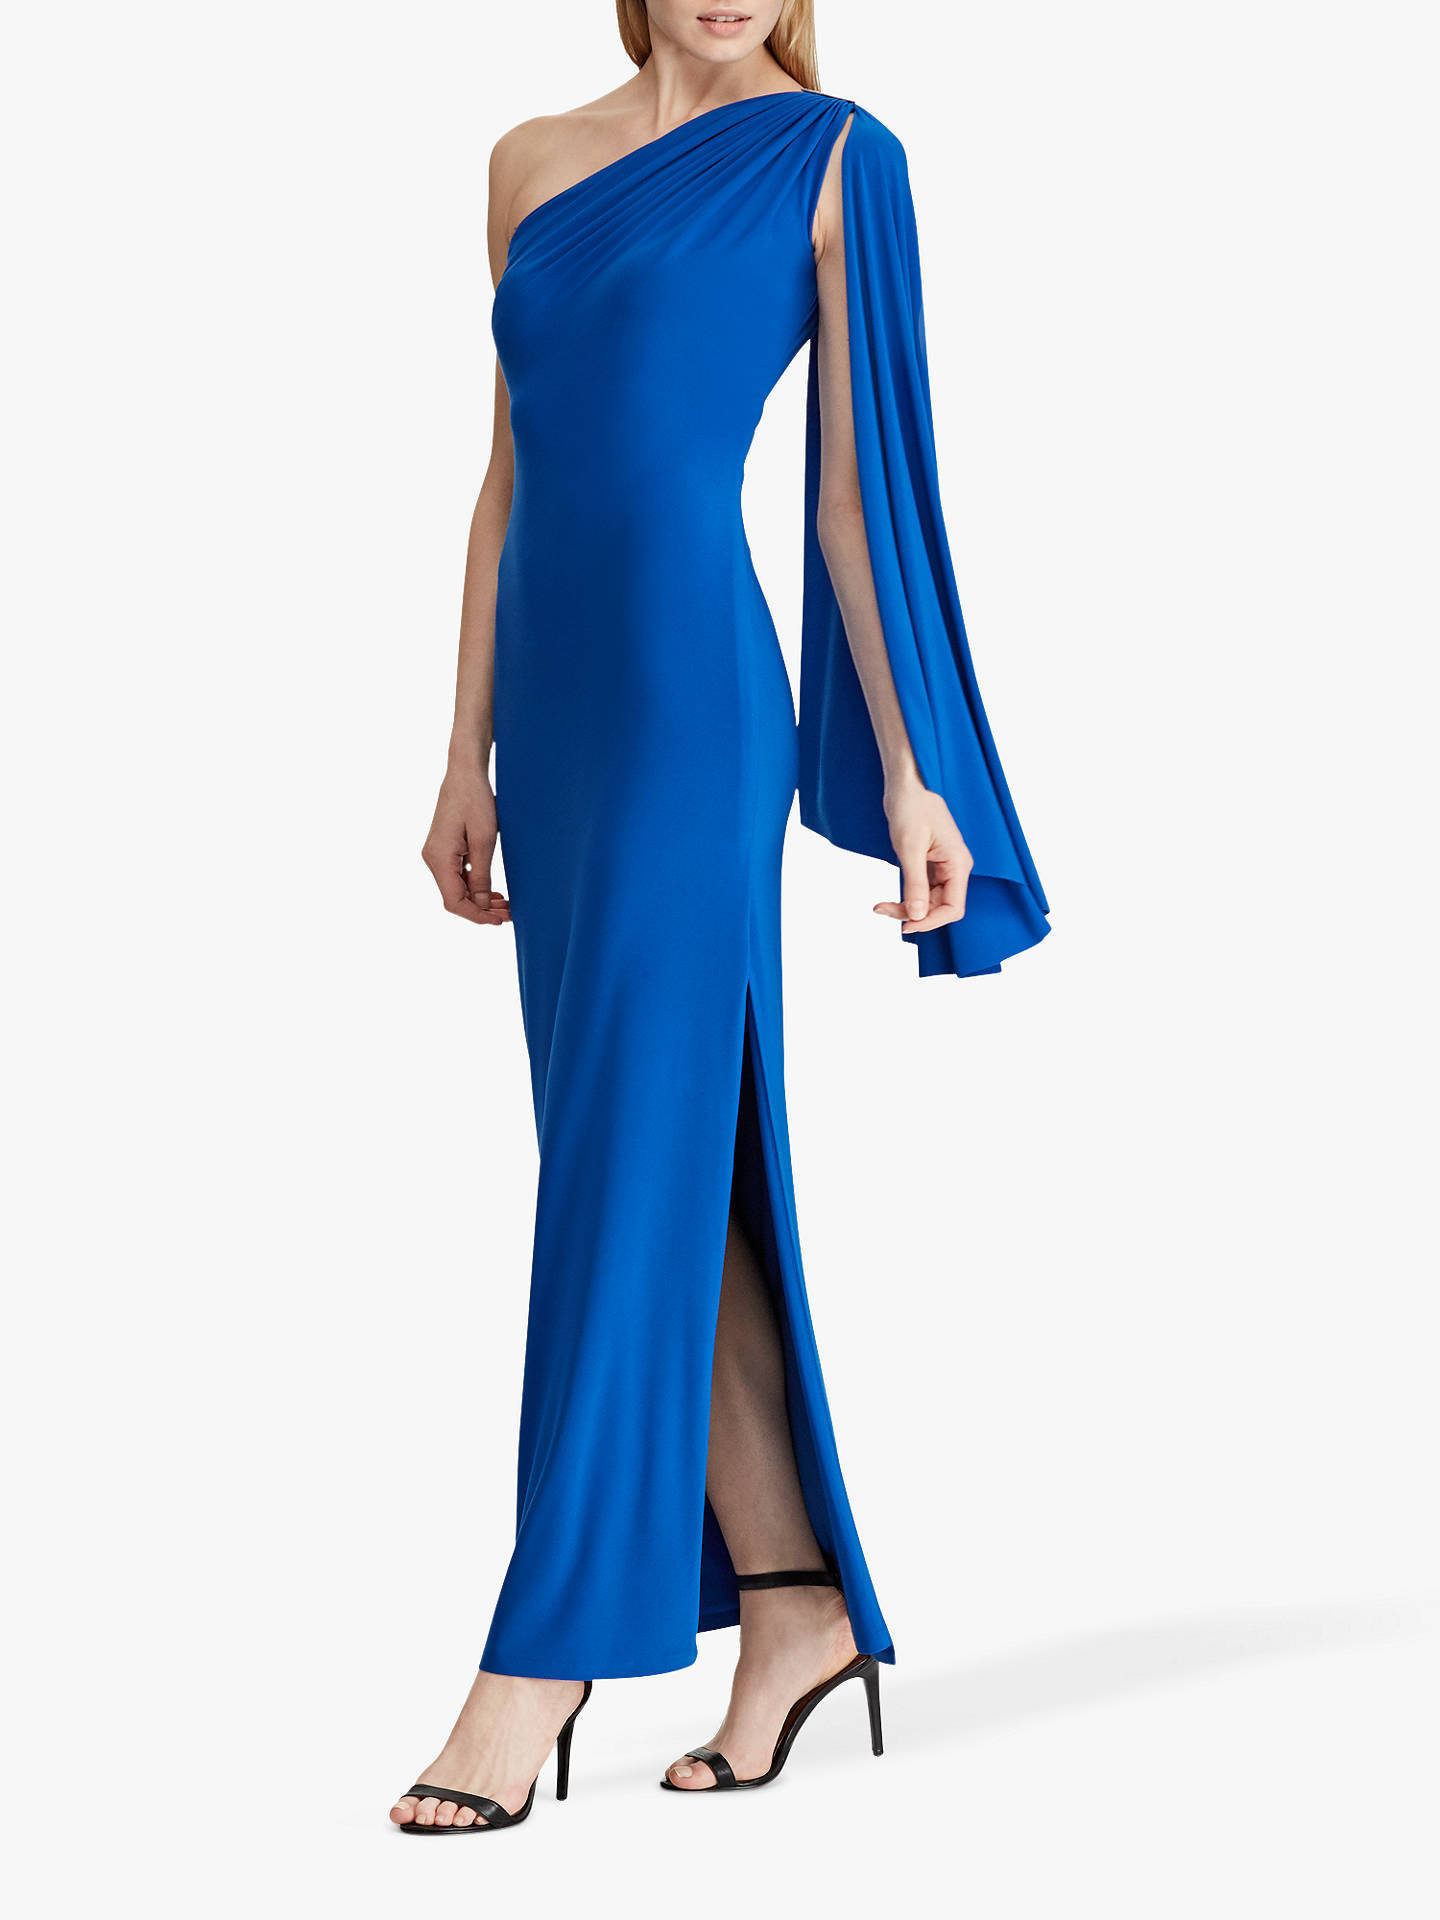 8a4810a099a0 Buy Lauren Ralph Lauren Dellah One Shoulder Evening Dress, Portuguese Blue,  6 Online at ...